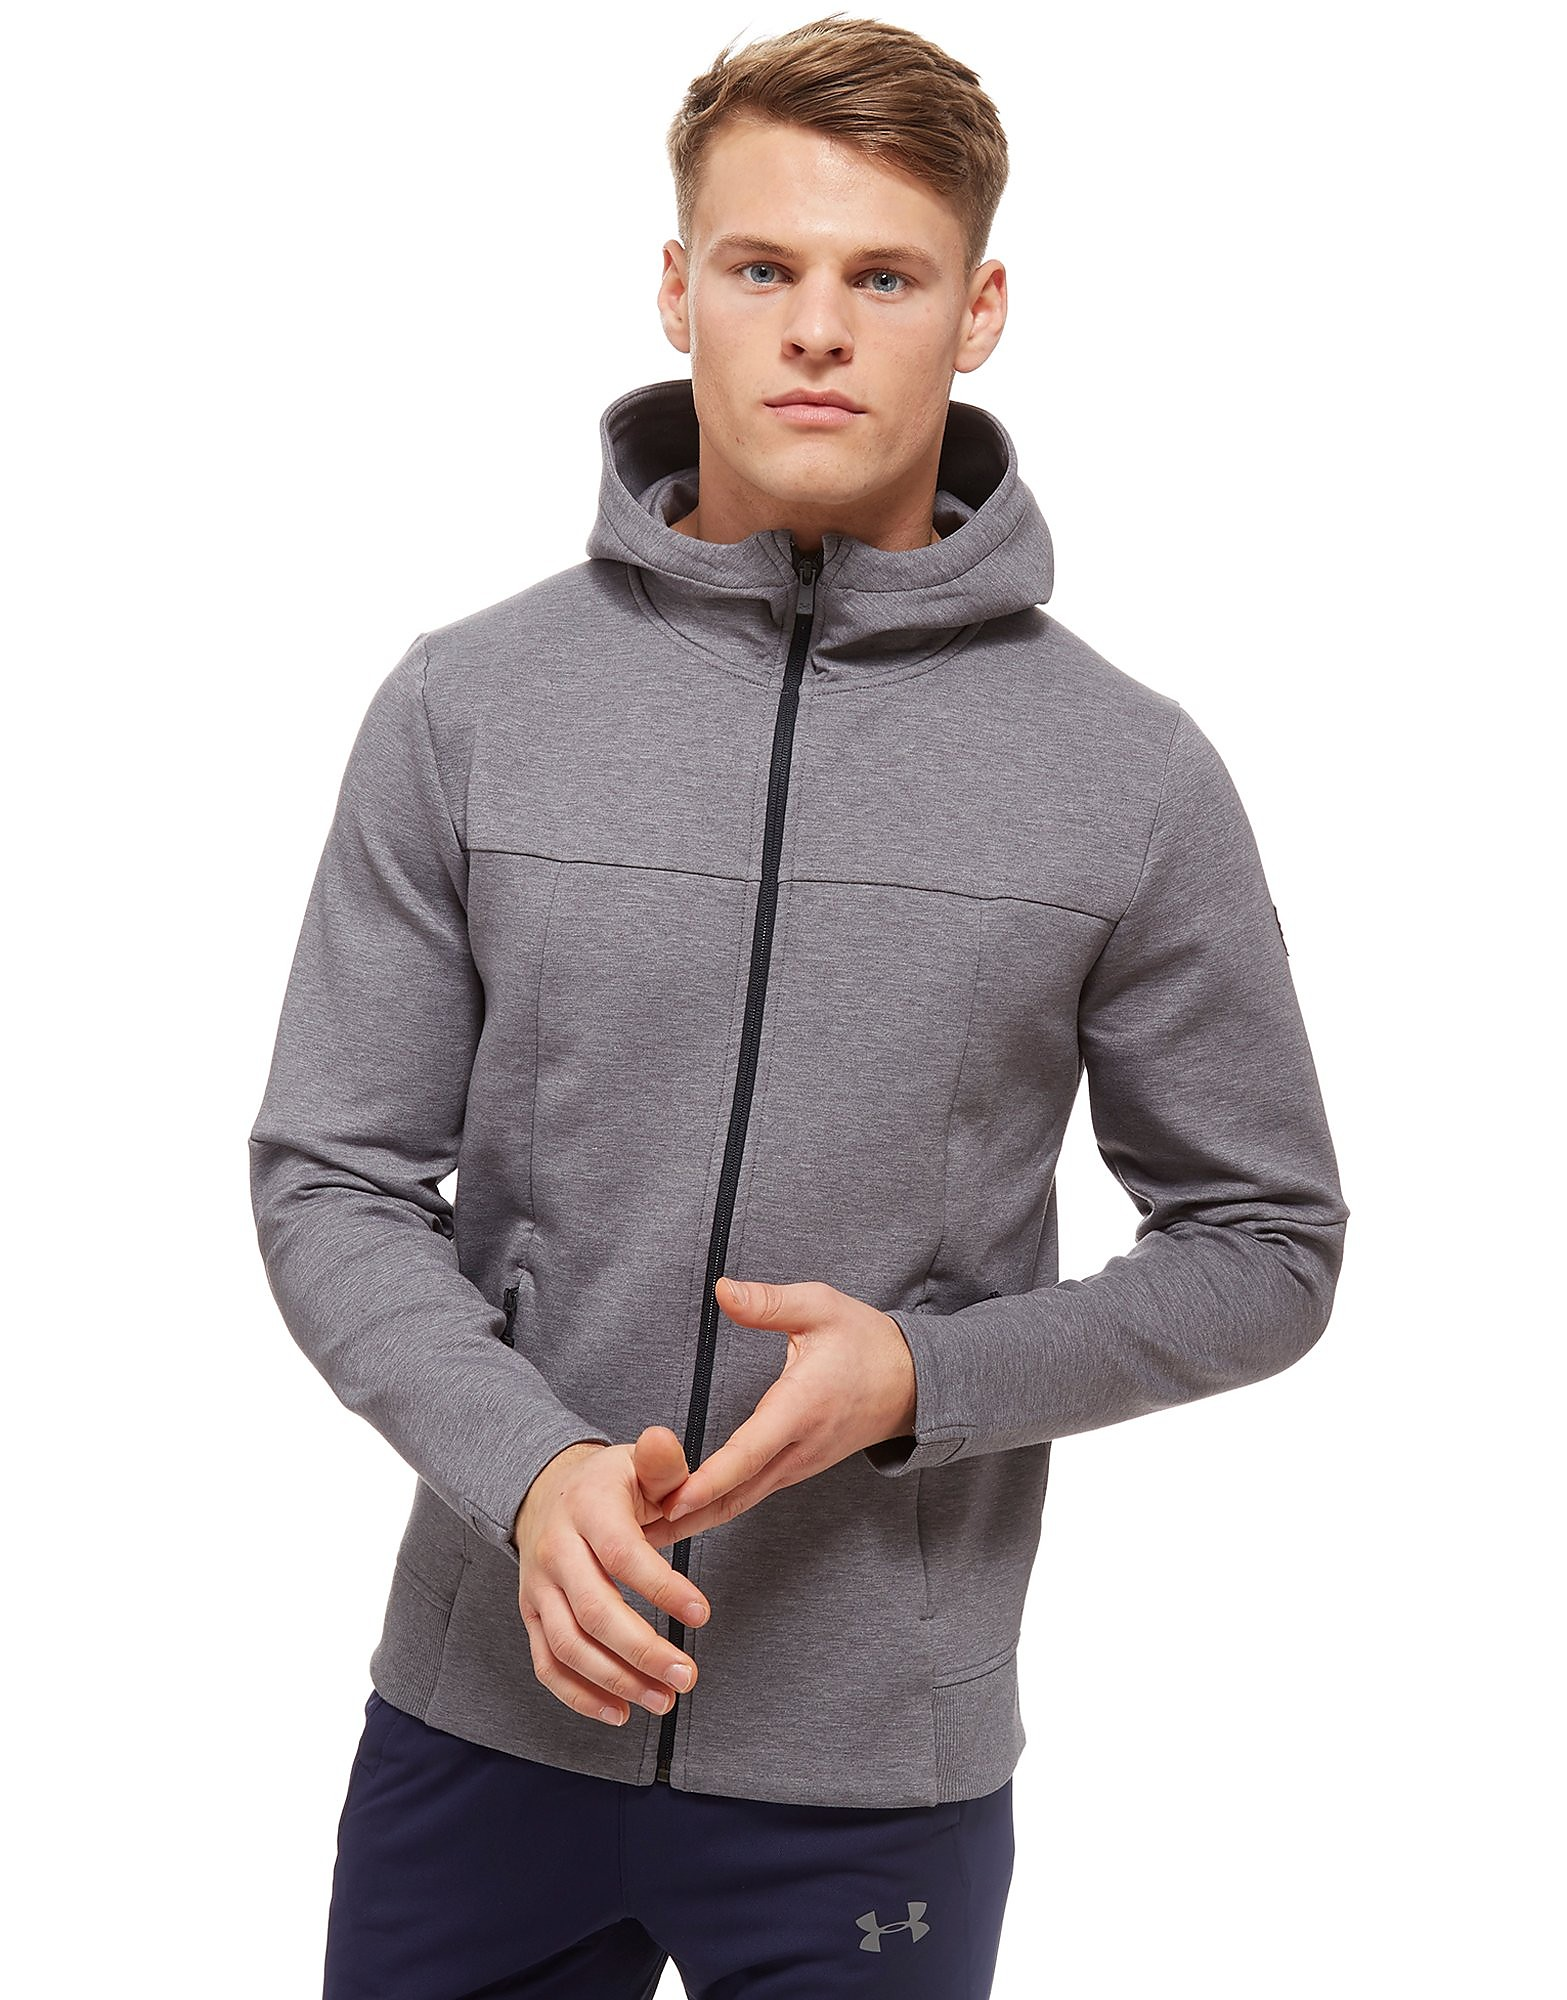 Under Armour Elite Full Zip Hoodie